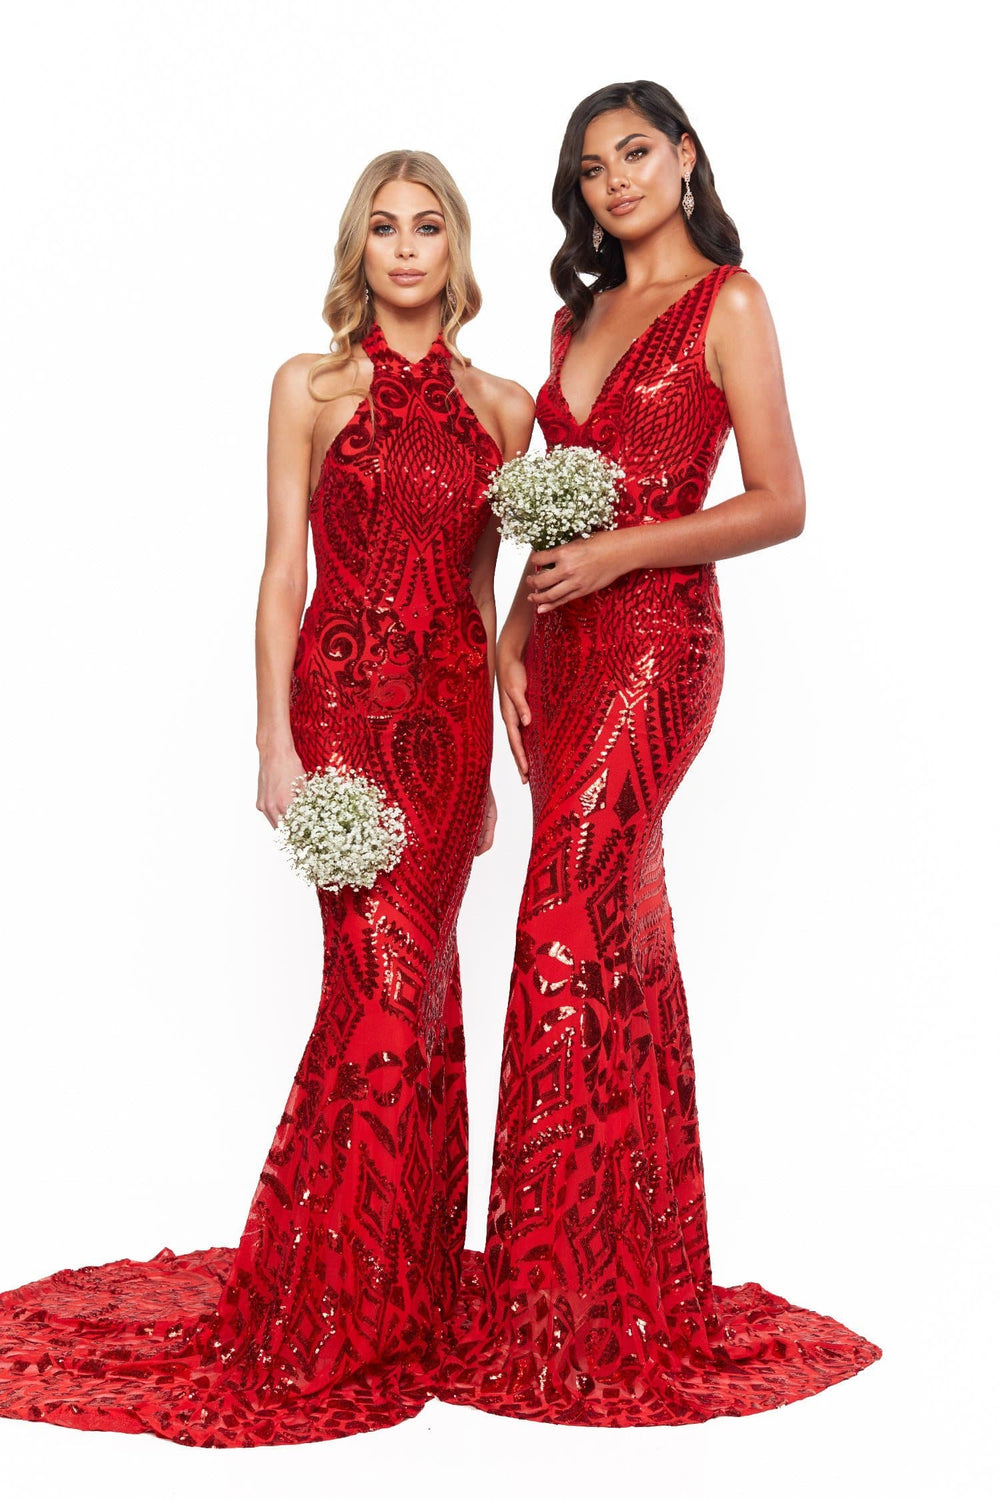 A&N Crown - Red Sequins Gown with Plunge Neckline and Mermaid Train